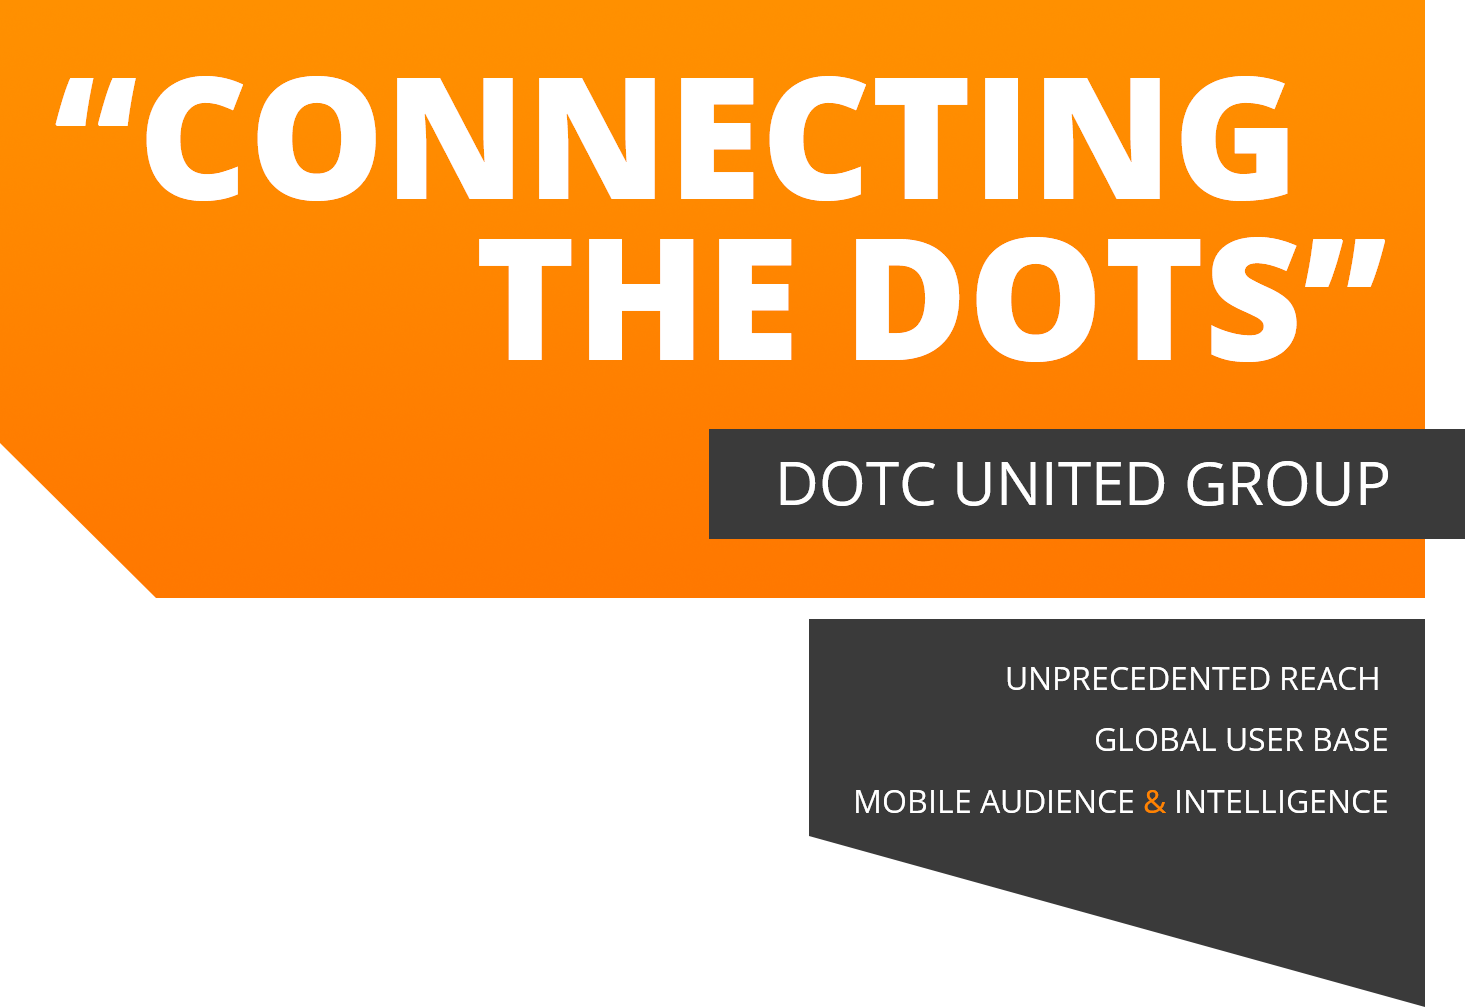 DotC United Group, Unprecedented Reach Global User Base Mobile Audience & Intelligence